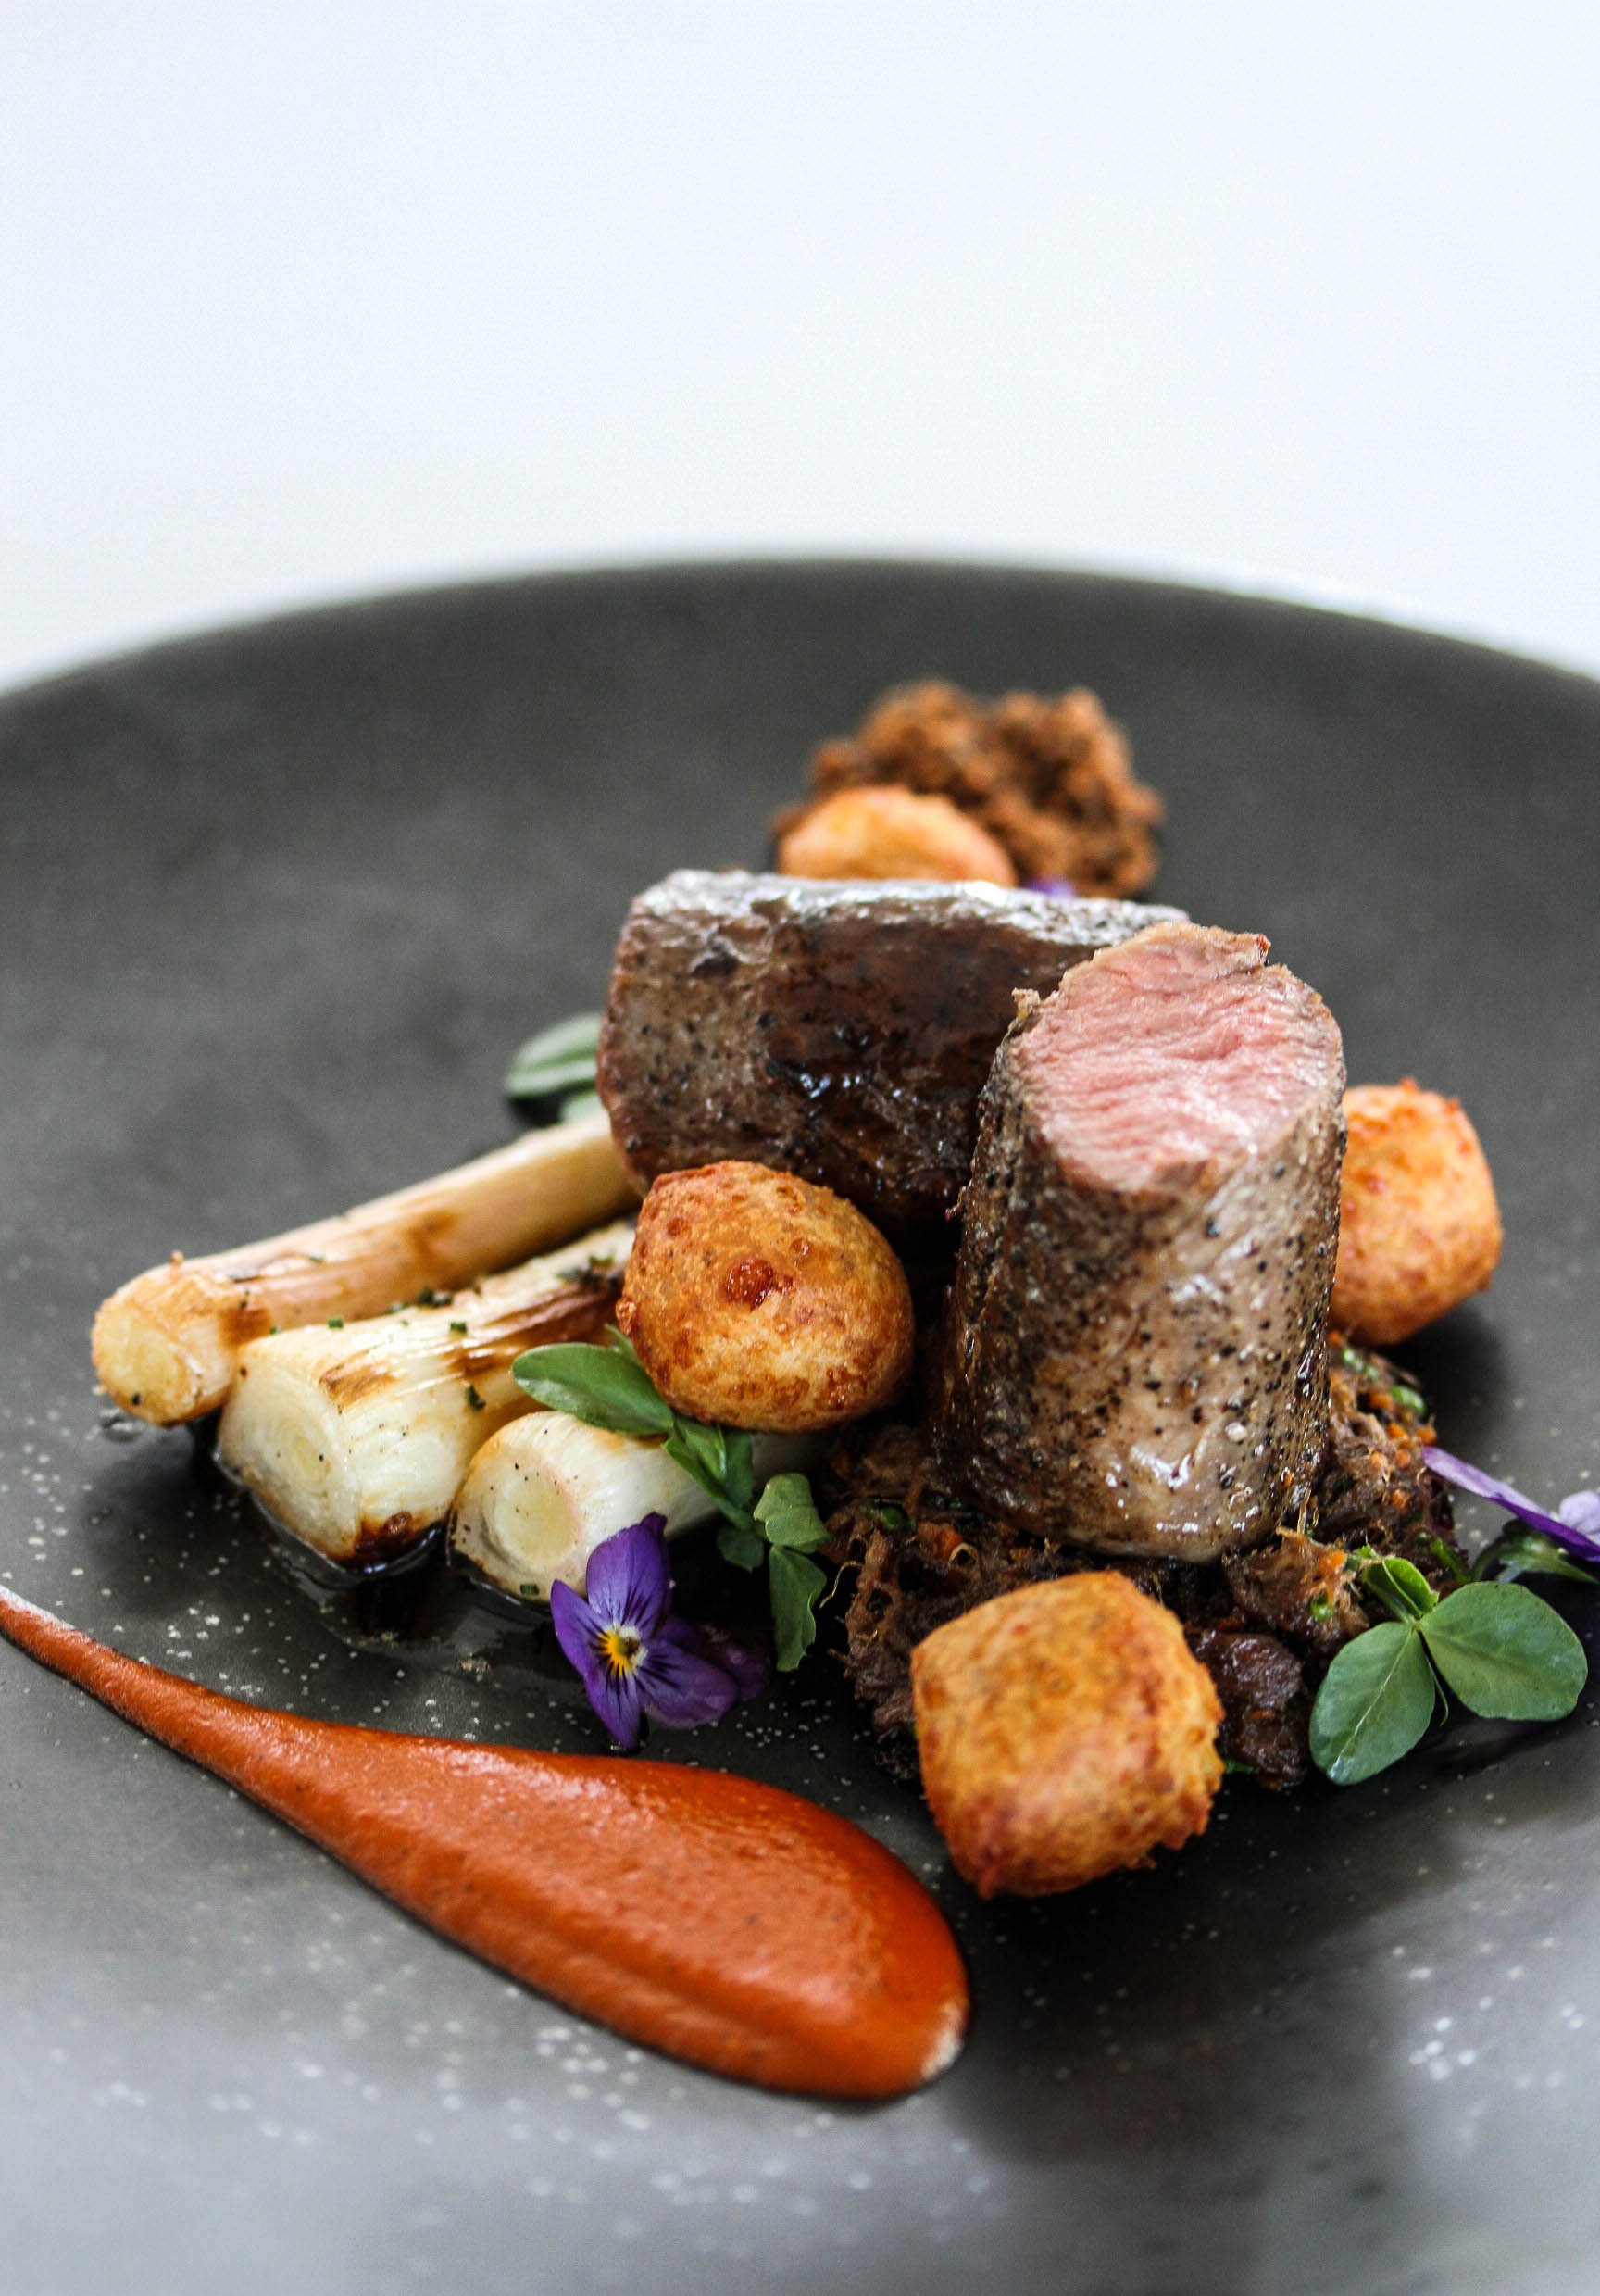 Dining in the Cape Winelands